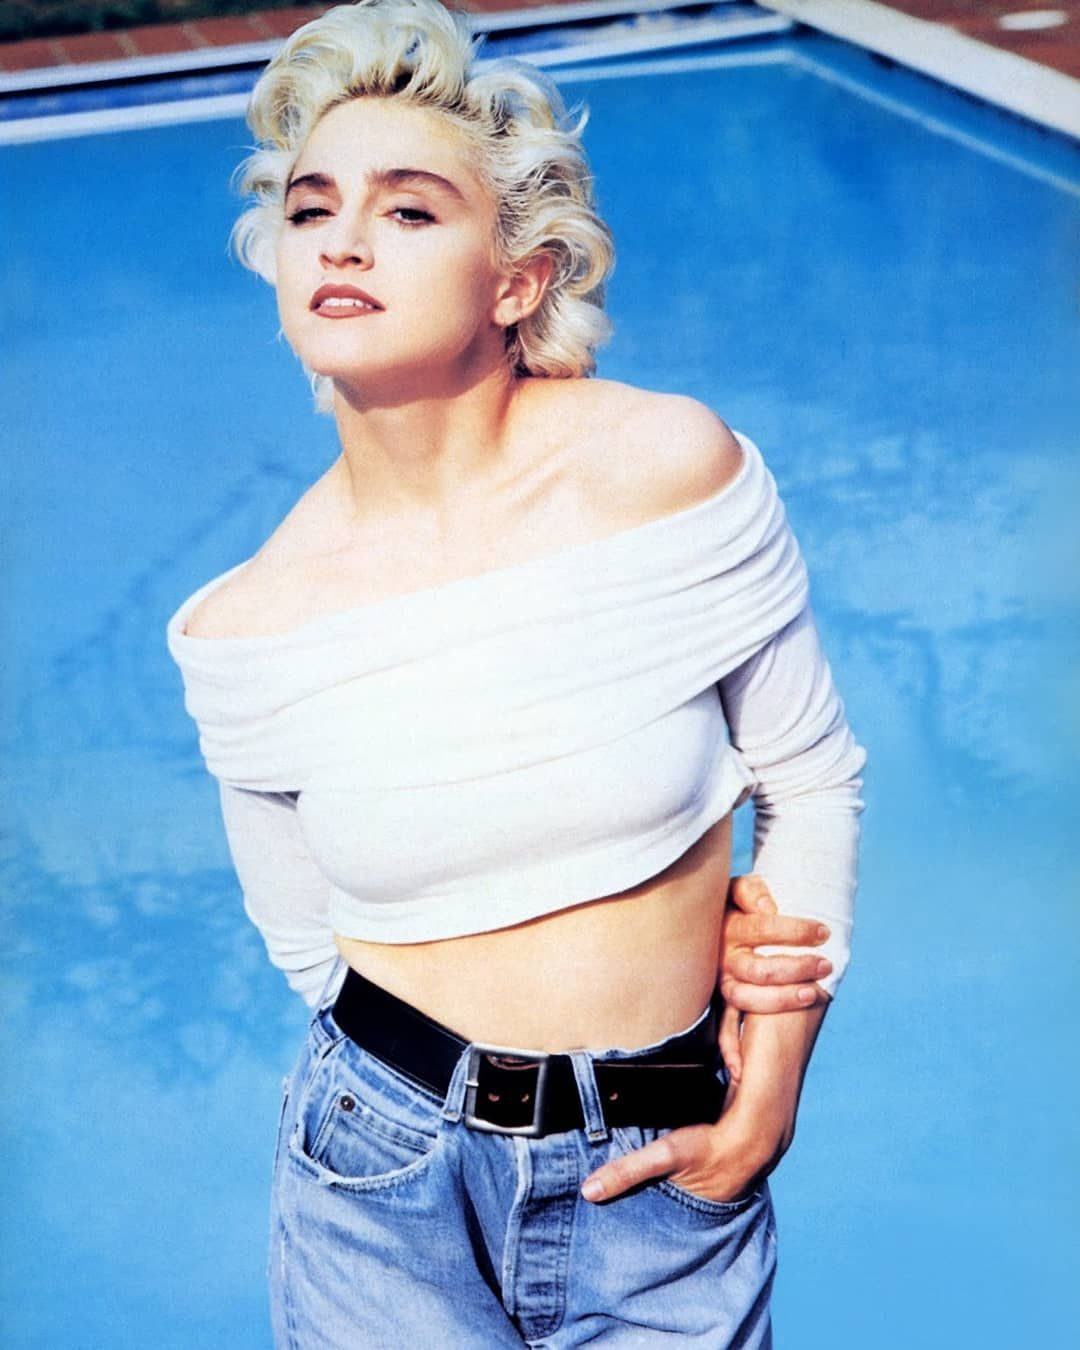 Madonna80s On Instagram Love Instagood Fashion Beauty Music Blonde Blueeyes Blondehair 80s Ame Madonna Vogue Madonna Fashion Madonna Pictures